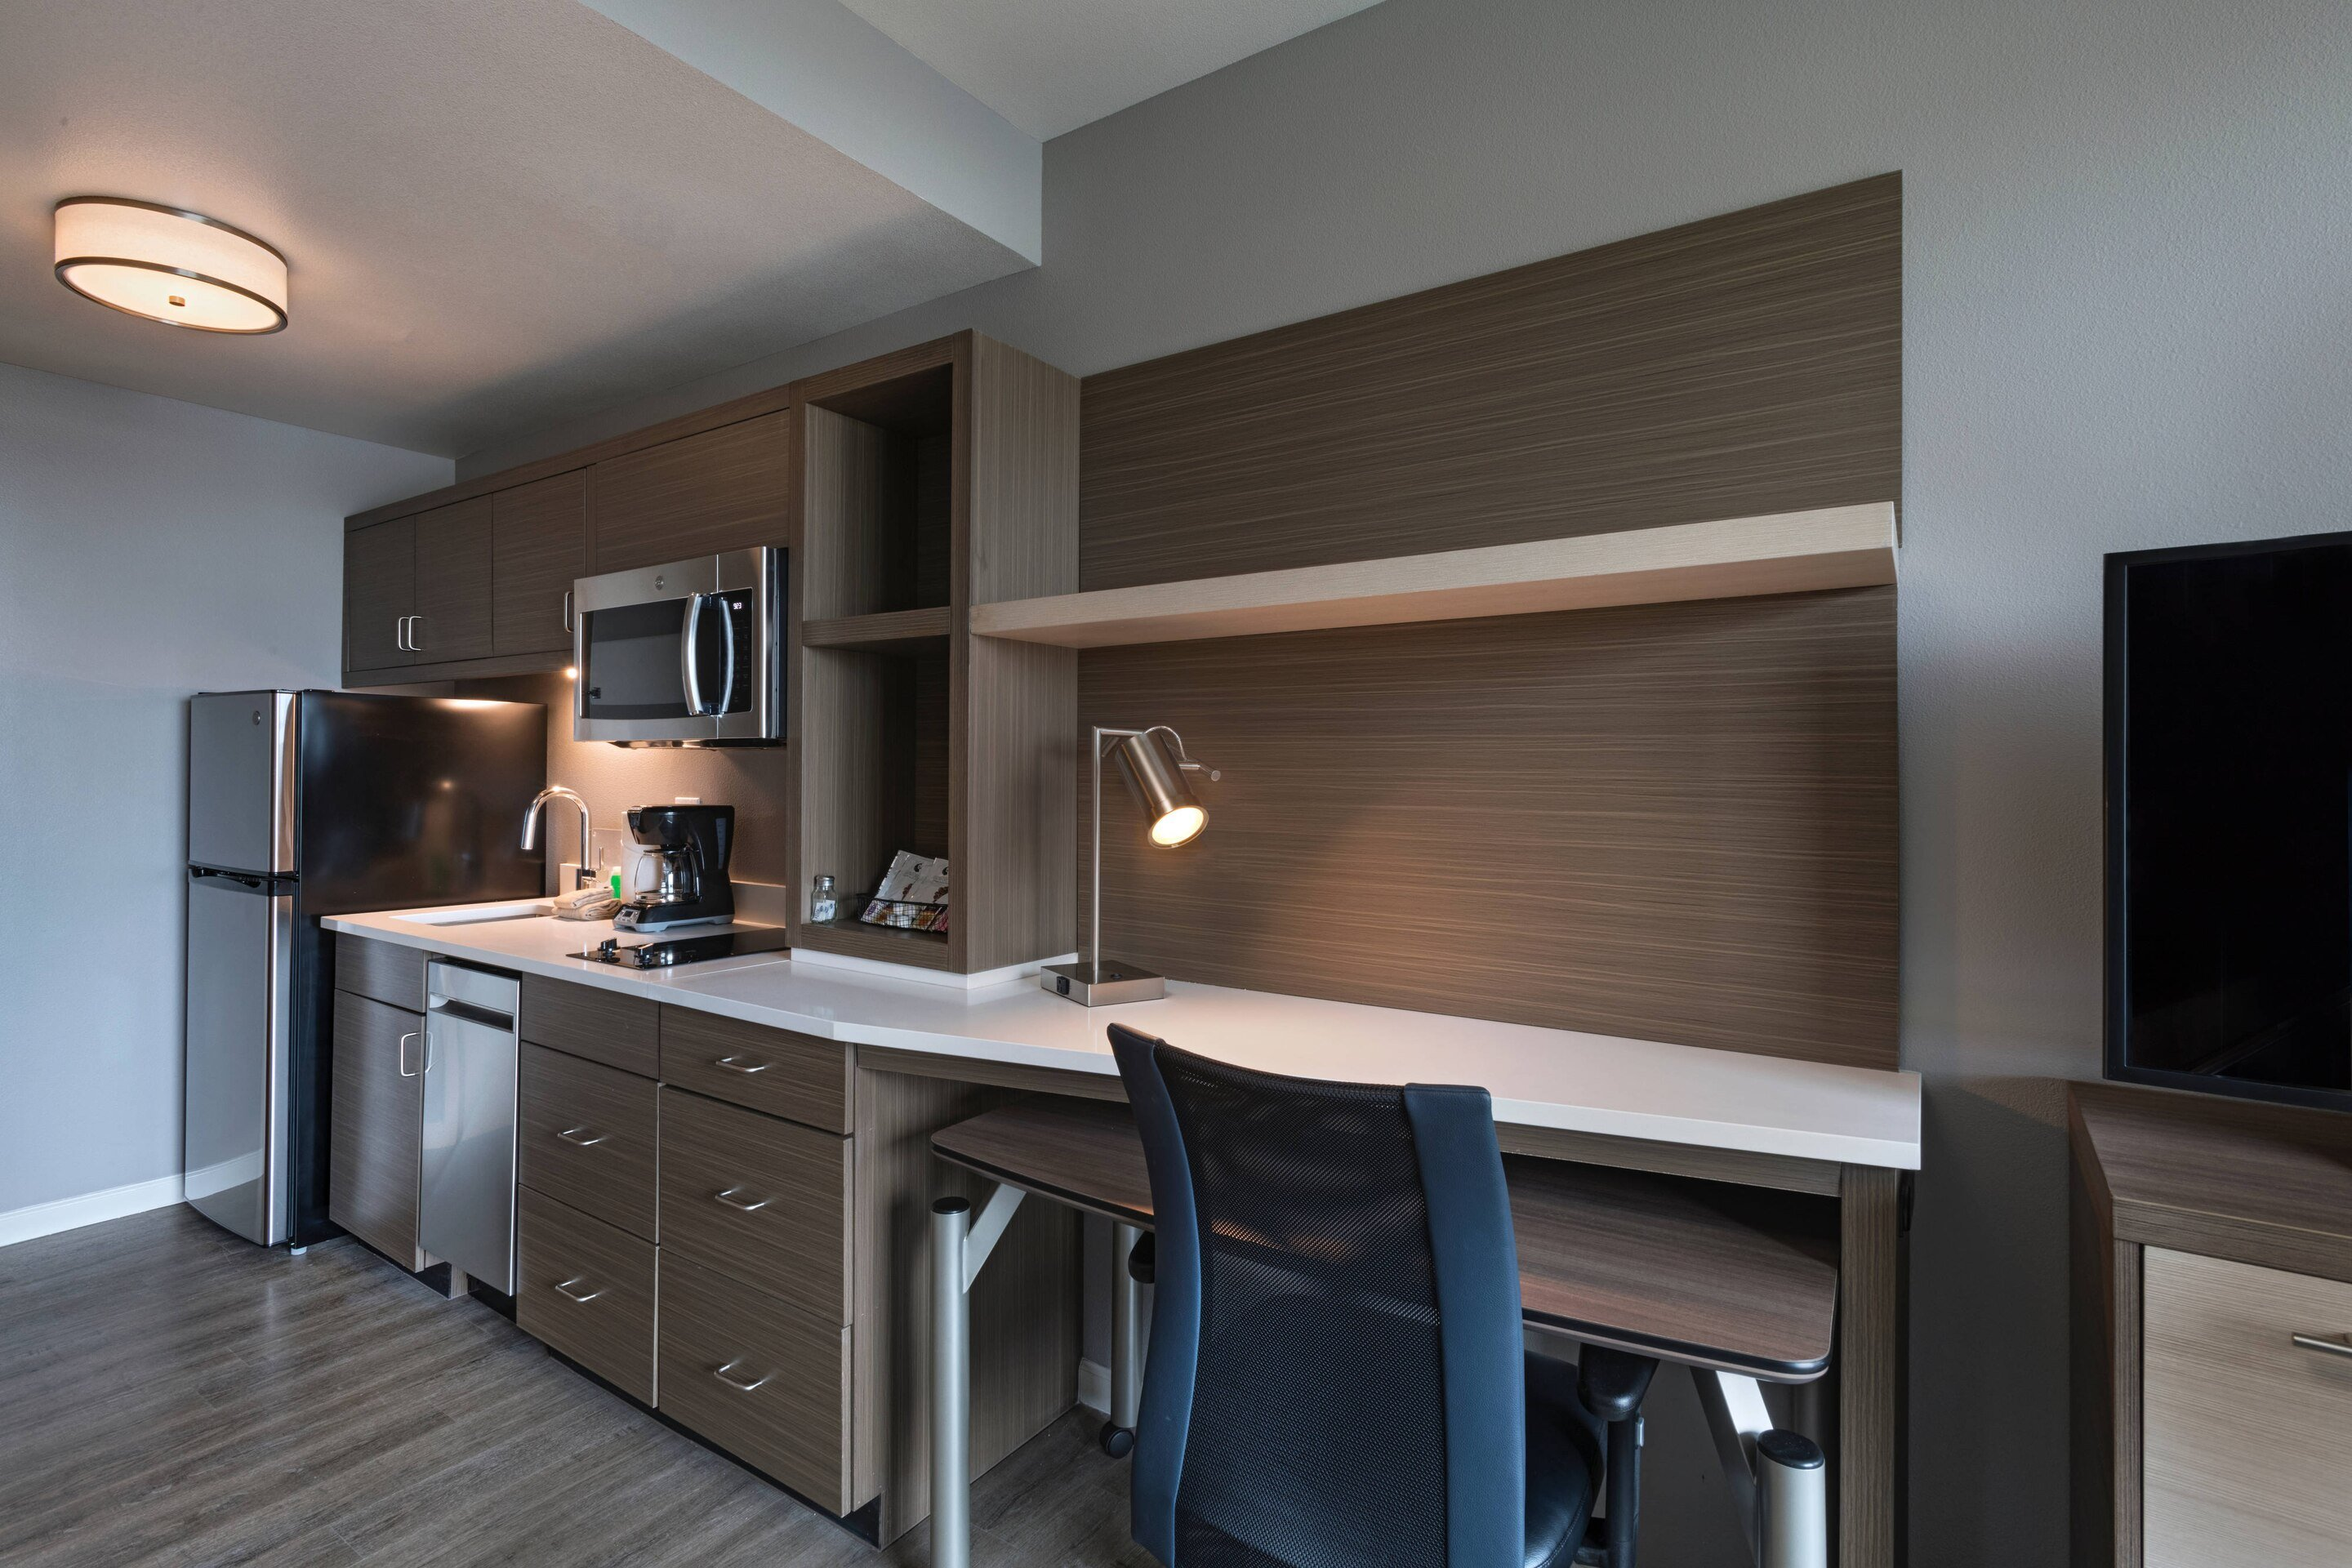 A kitchenette and desk area at TownePlace Suites by Marriott San Diego Airport/Liberty Station.